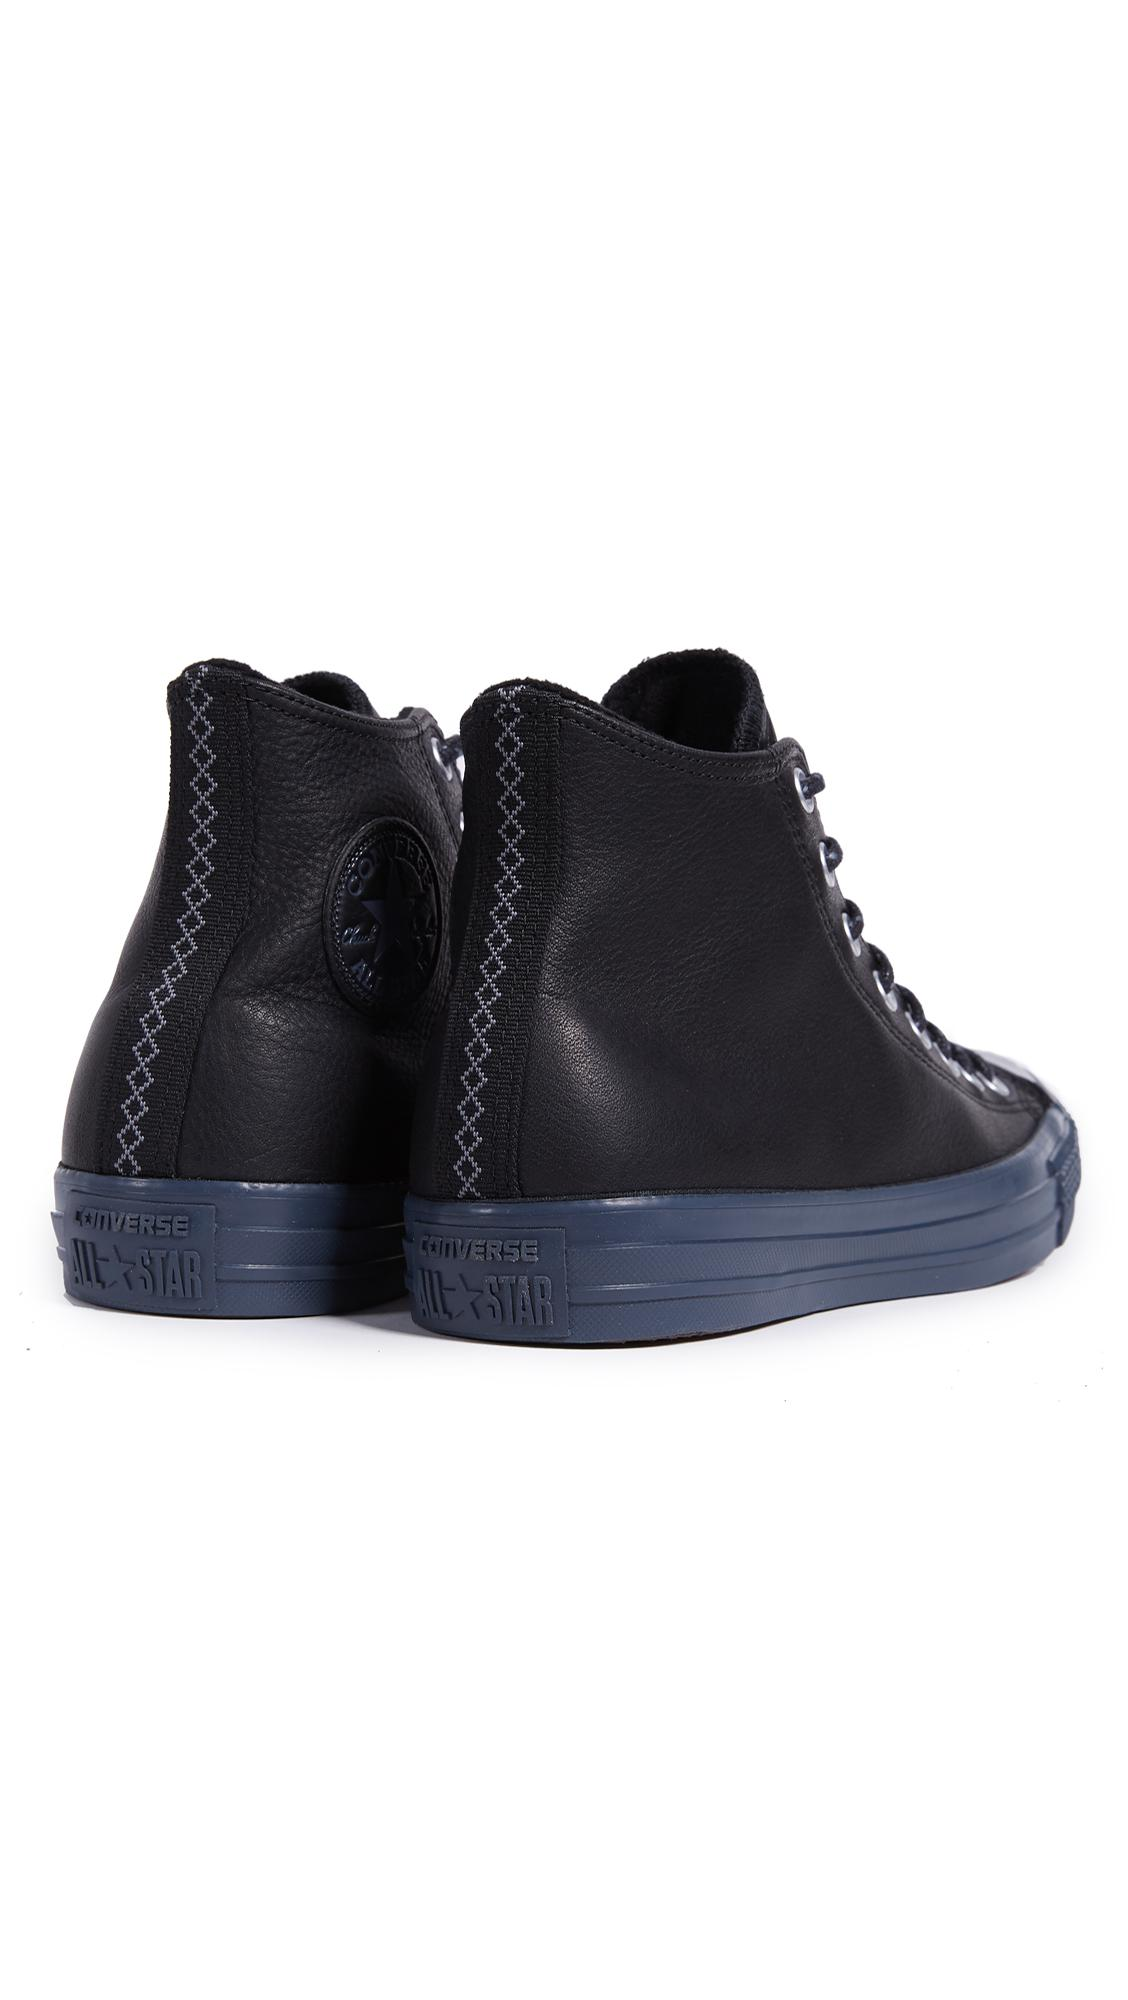 Converse Fleece Chuck Taylor Hi With Thermal Lining in Black/Black (Black) for Men